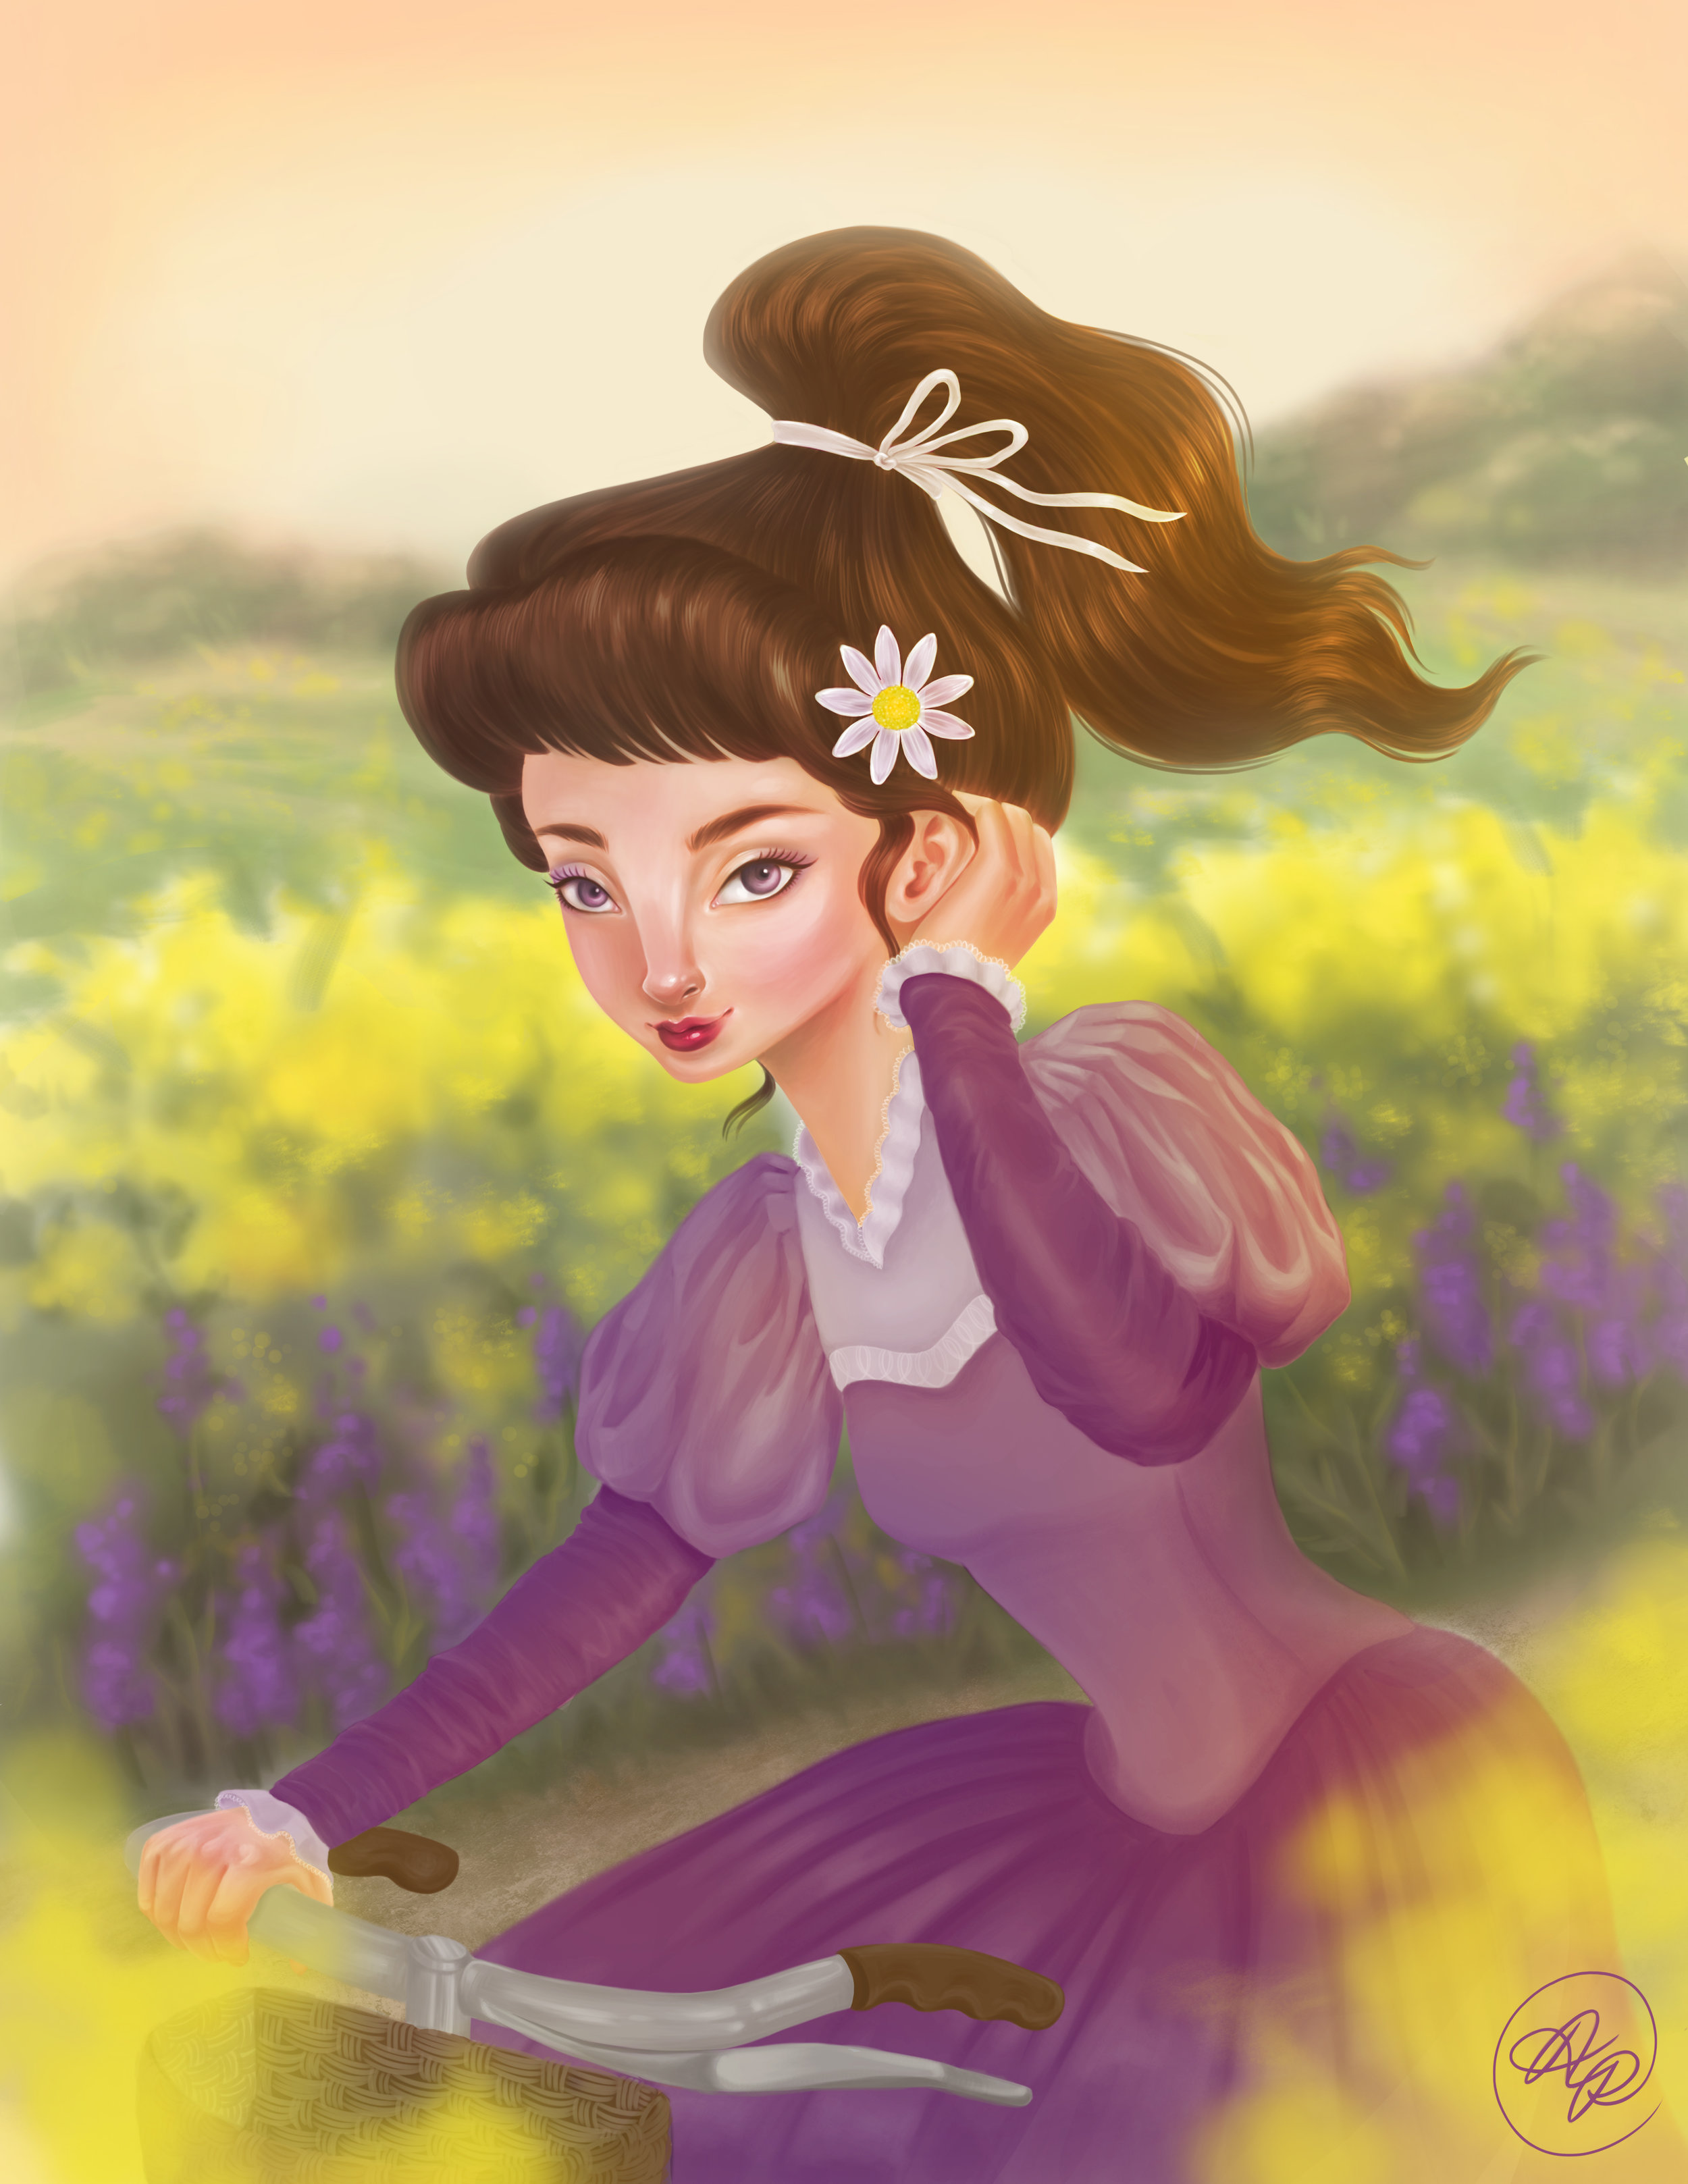 The Girl in the Meadow.jpg